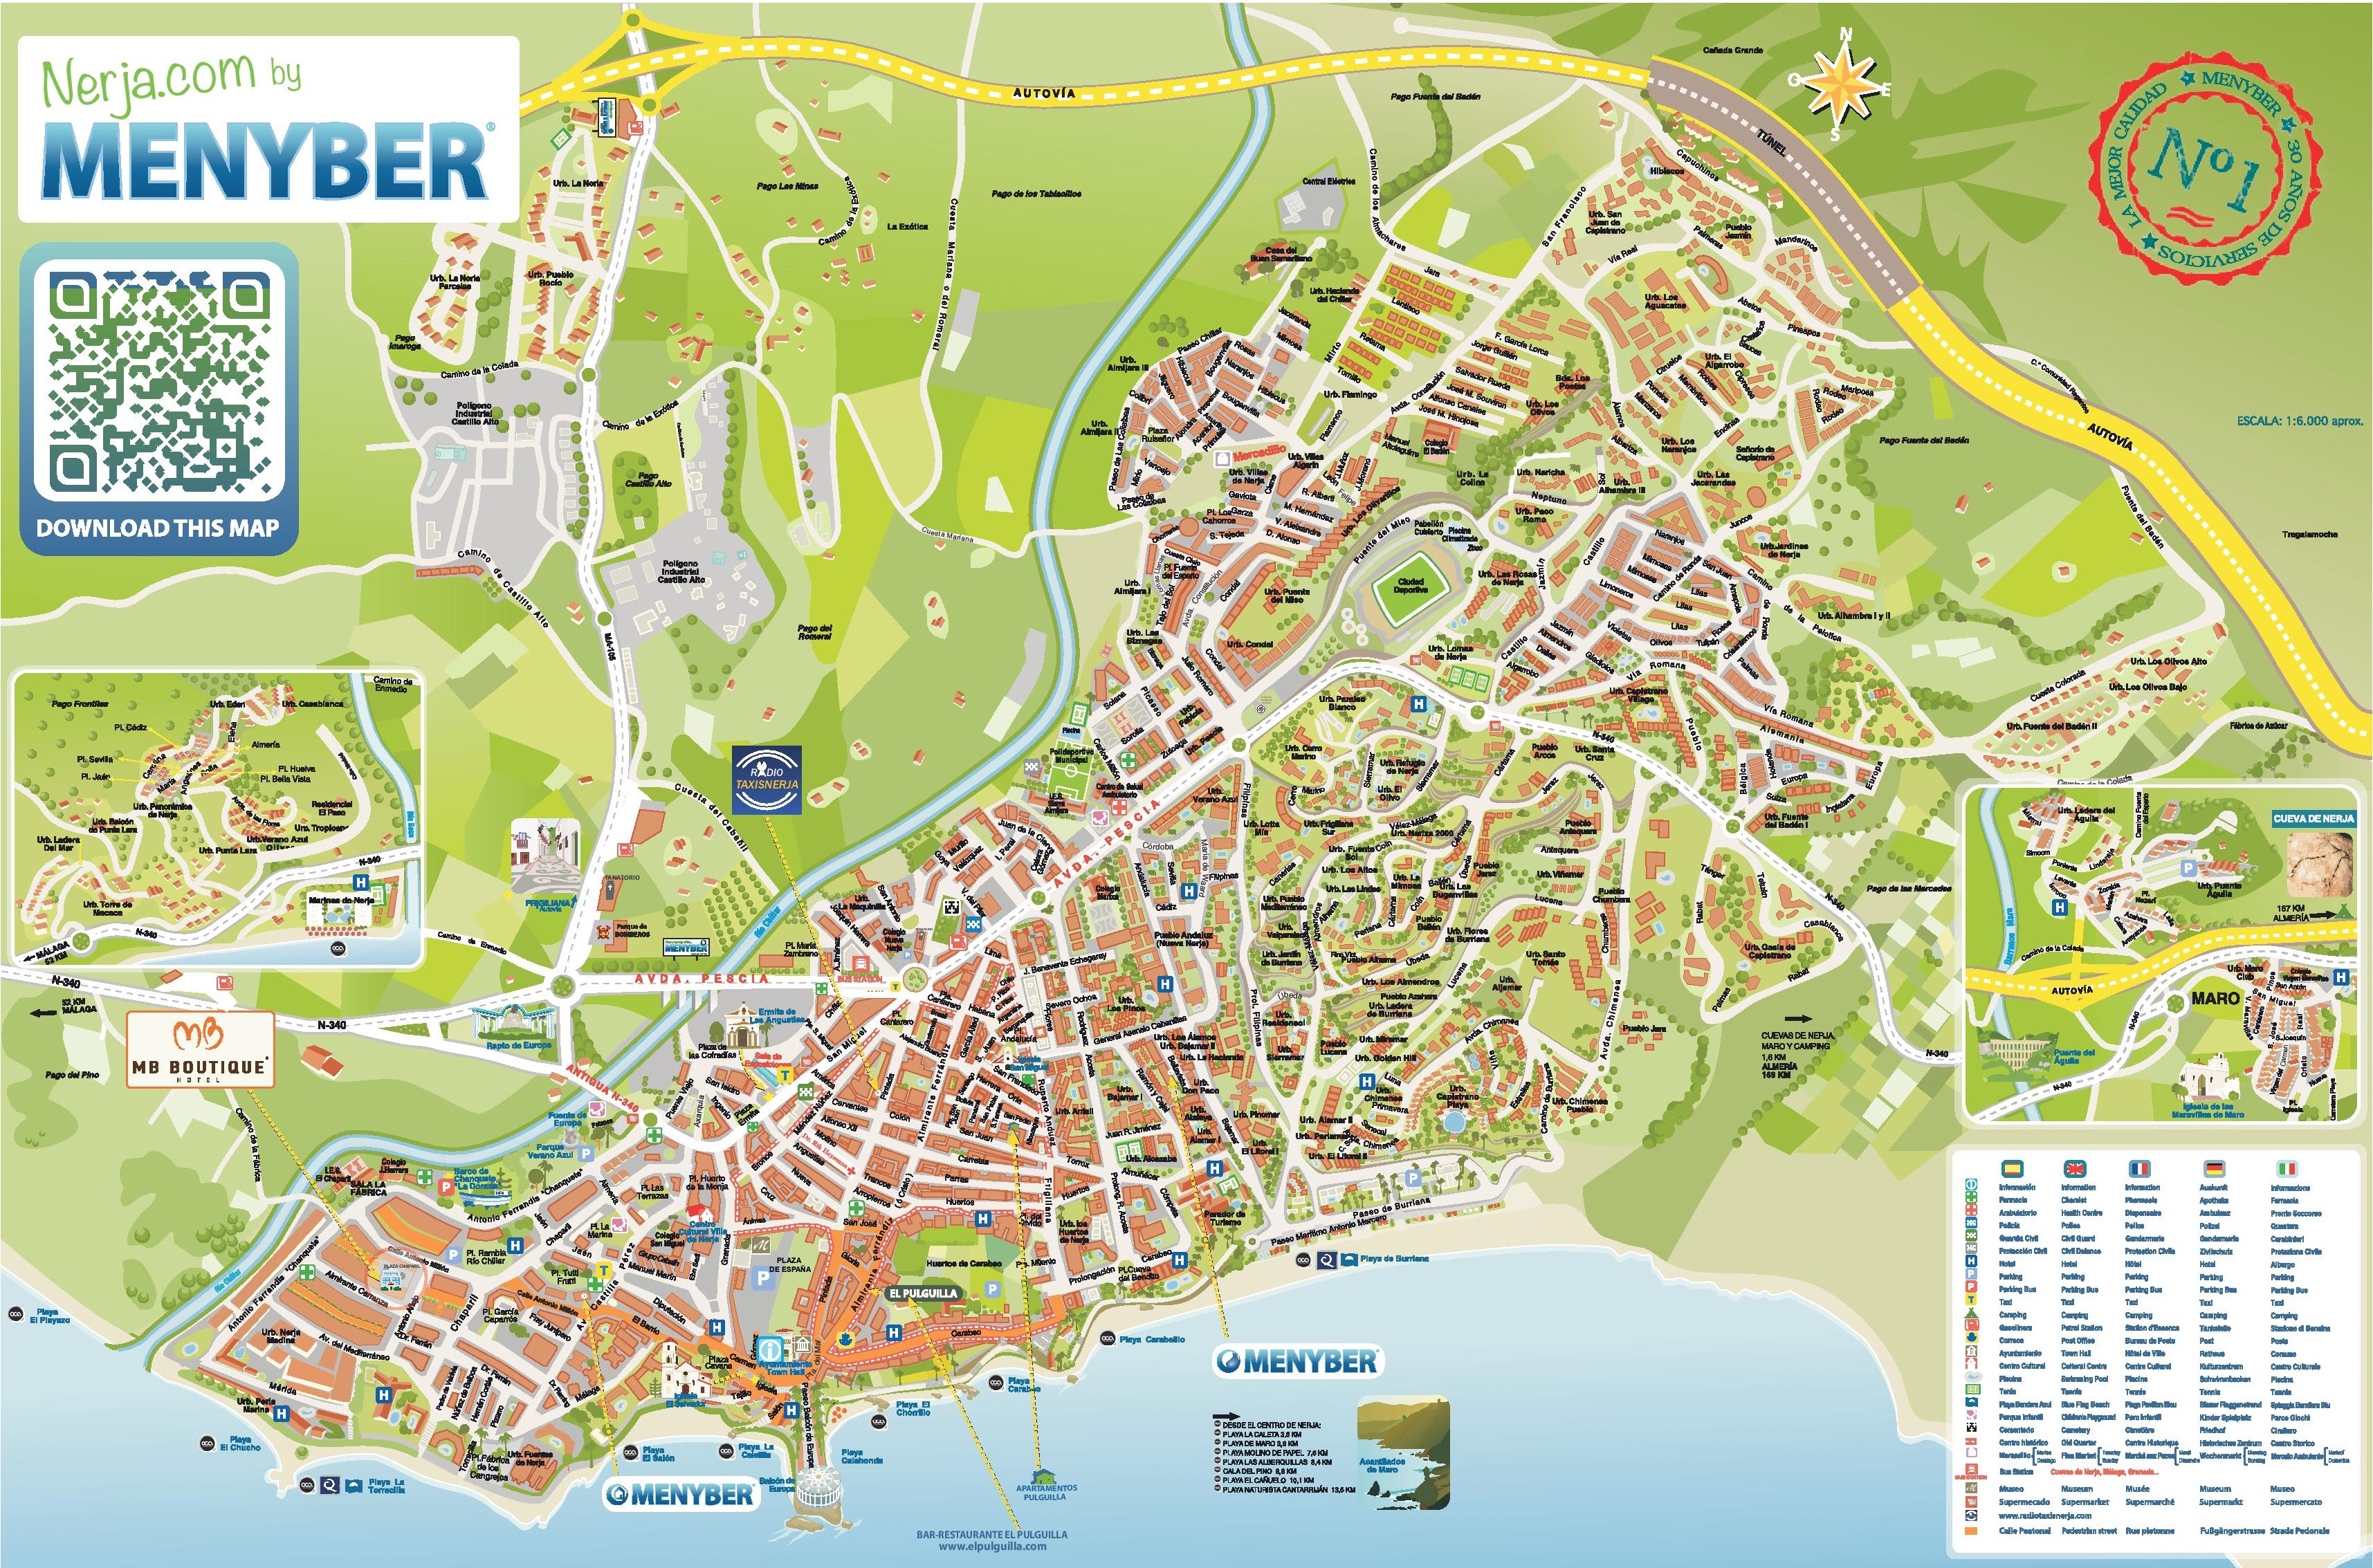 nerja hotels and sightseeings map